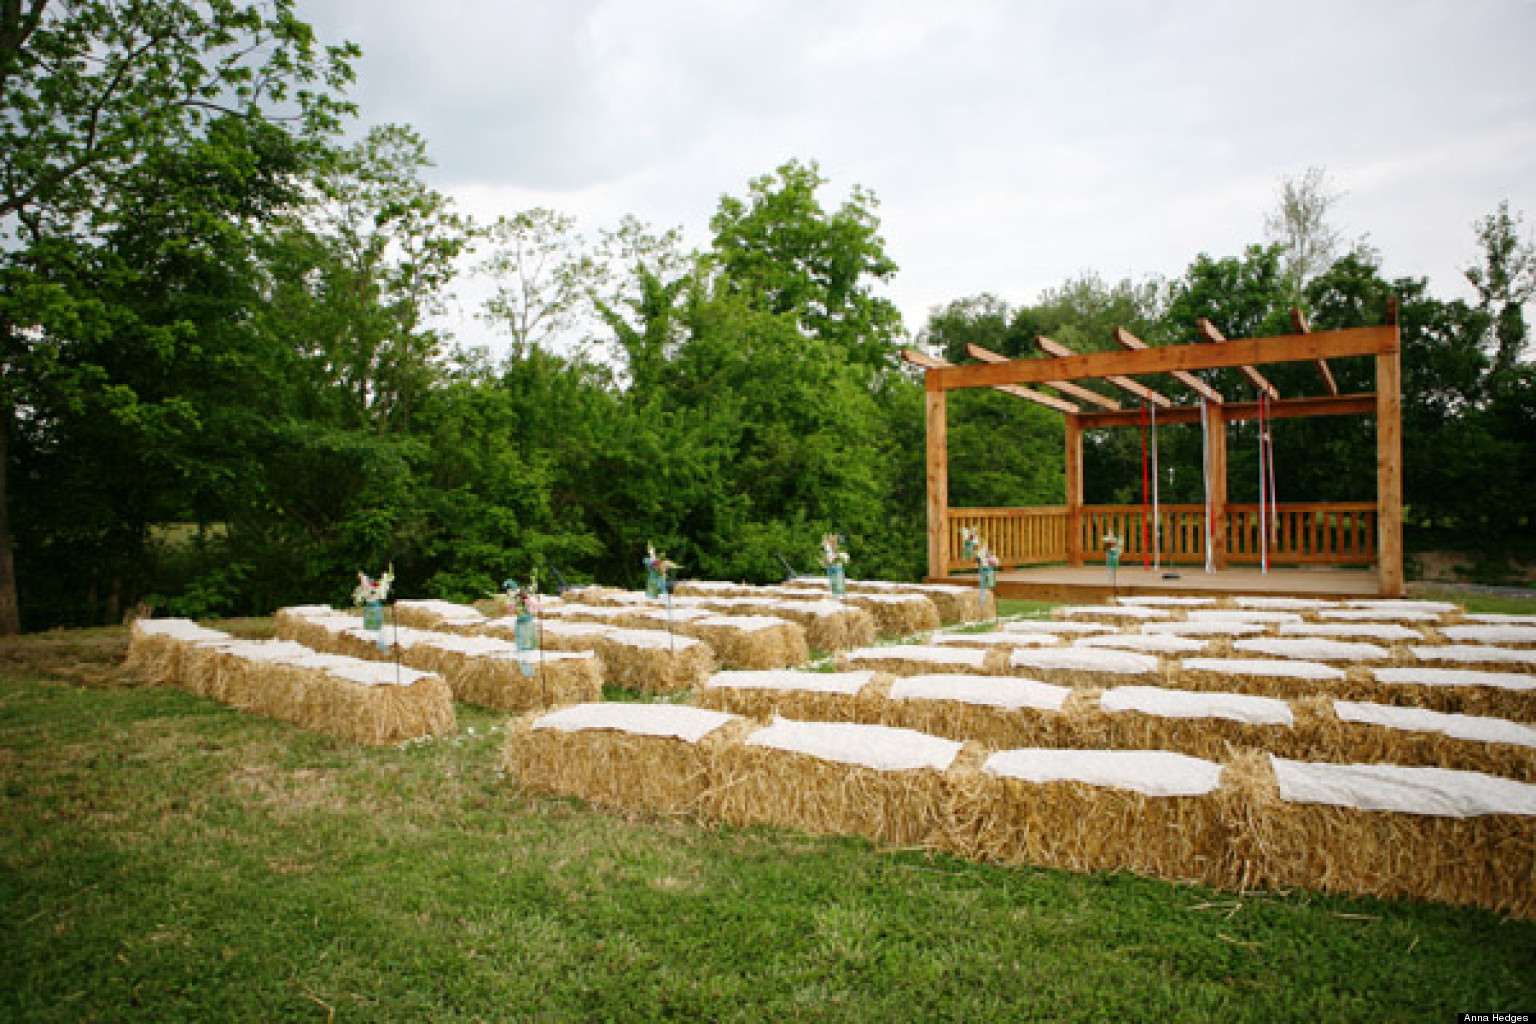 How To Plan A Casual Farm Wedding (PHOTOS)